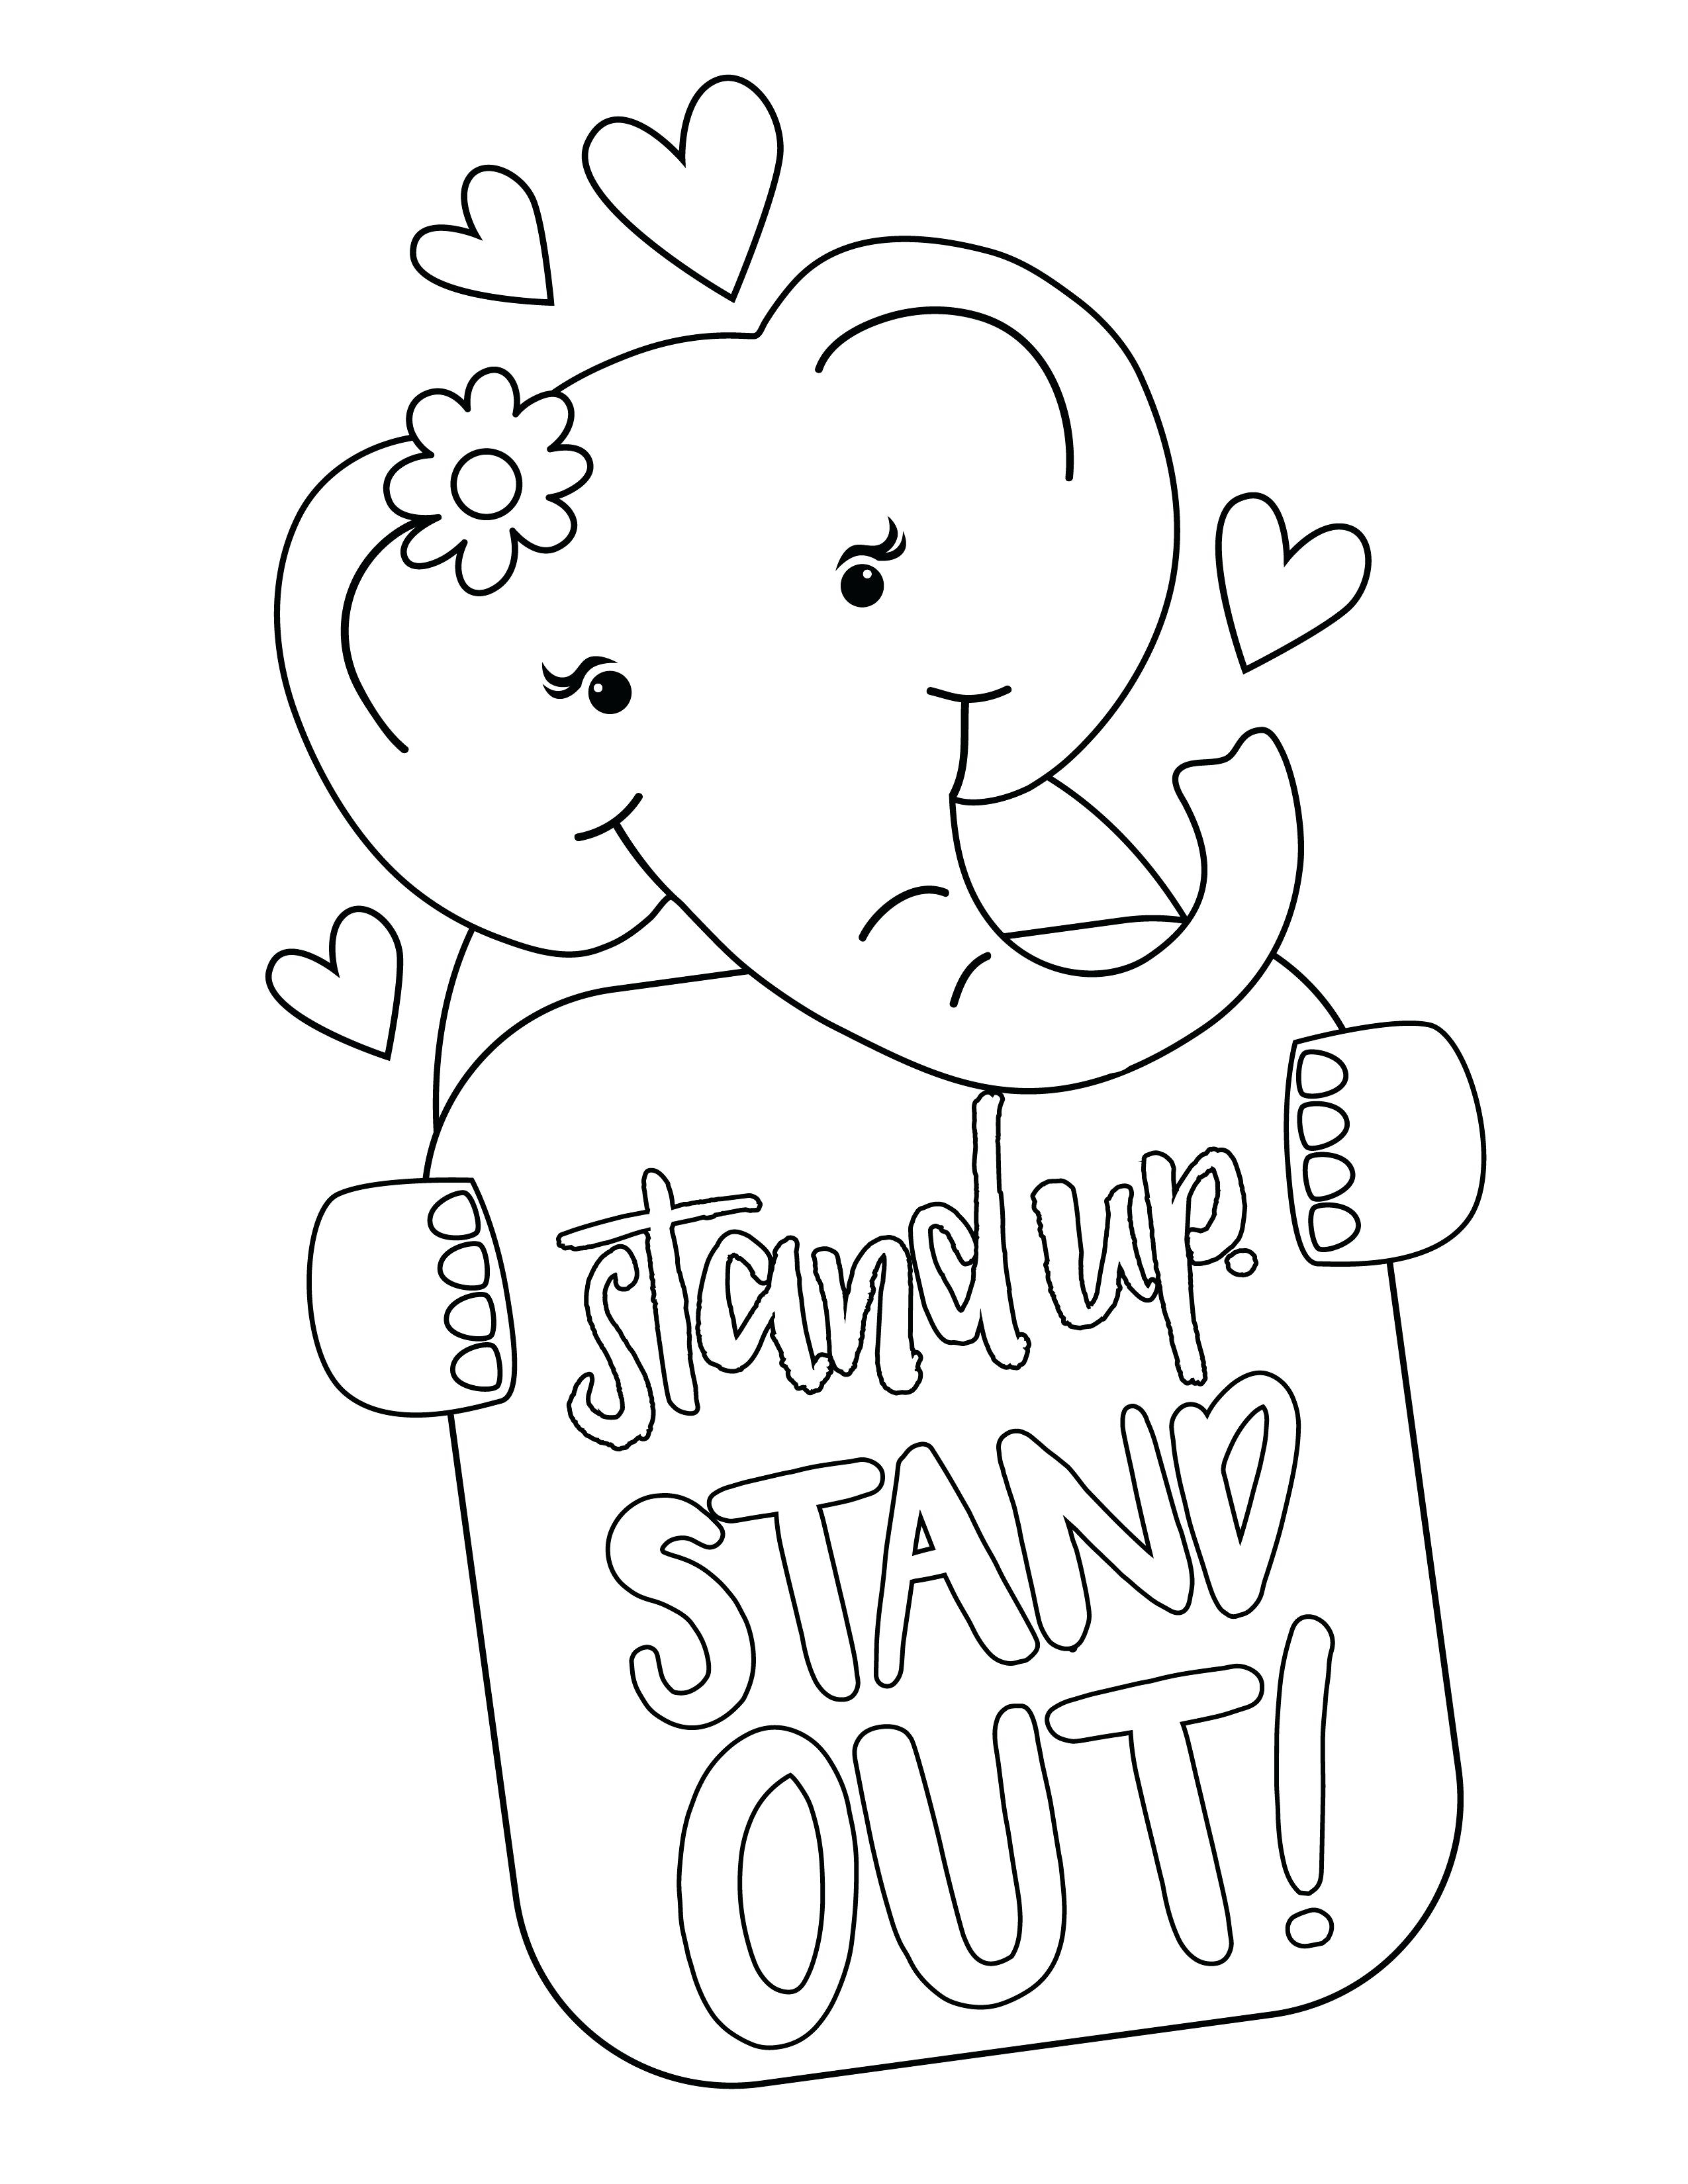 Girl Scout Coloring Pages at GetDrawings.com | Free for personal use ...